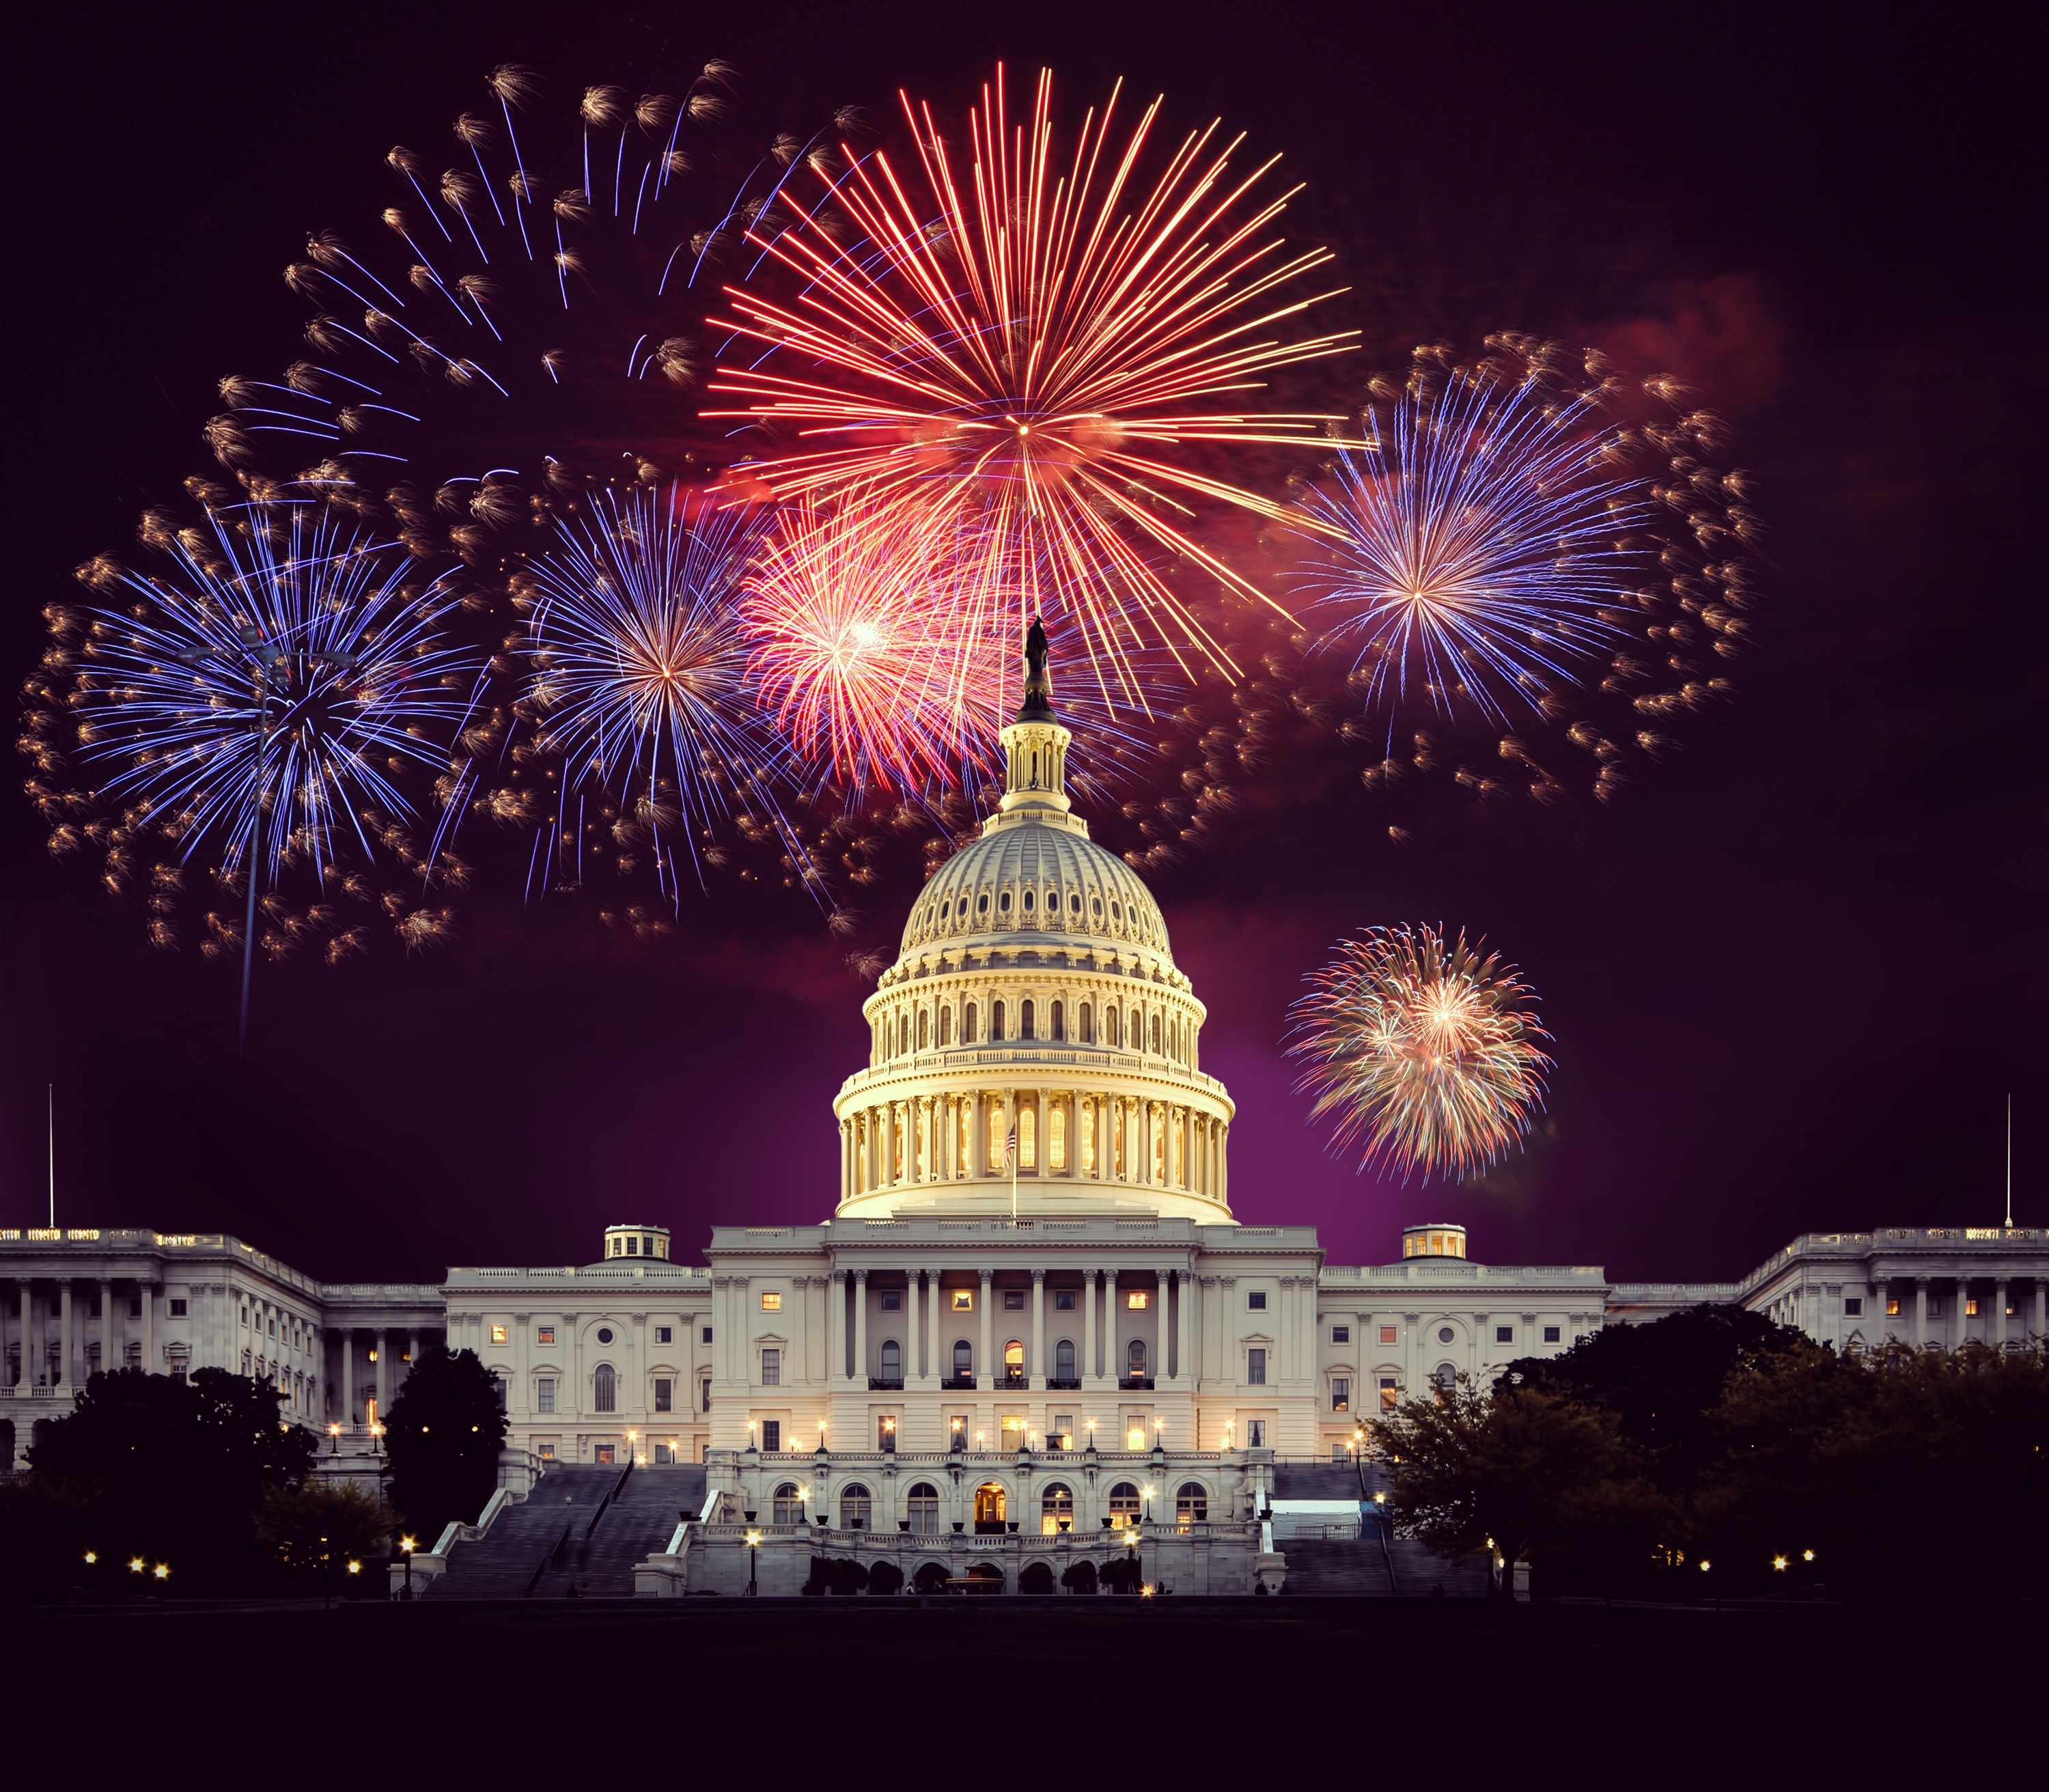 Fireworks explode above the U.S. Capitol